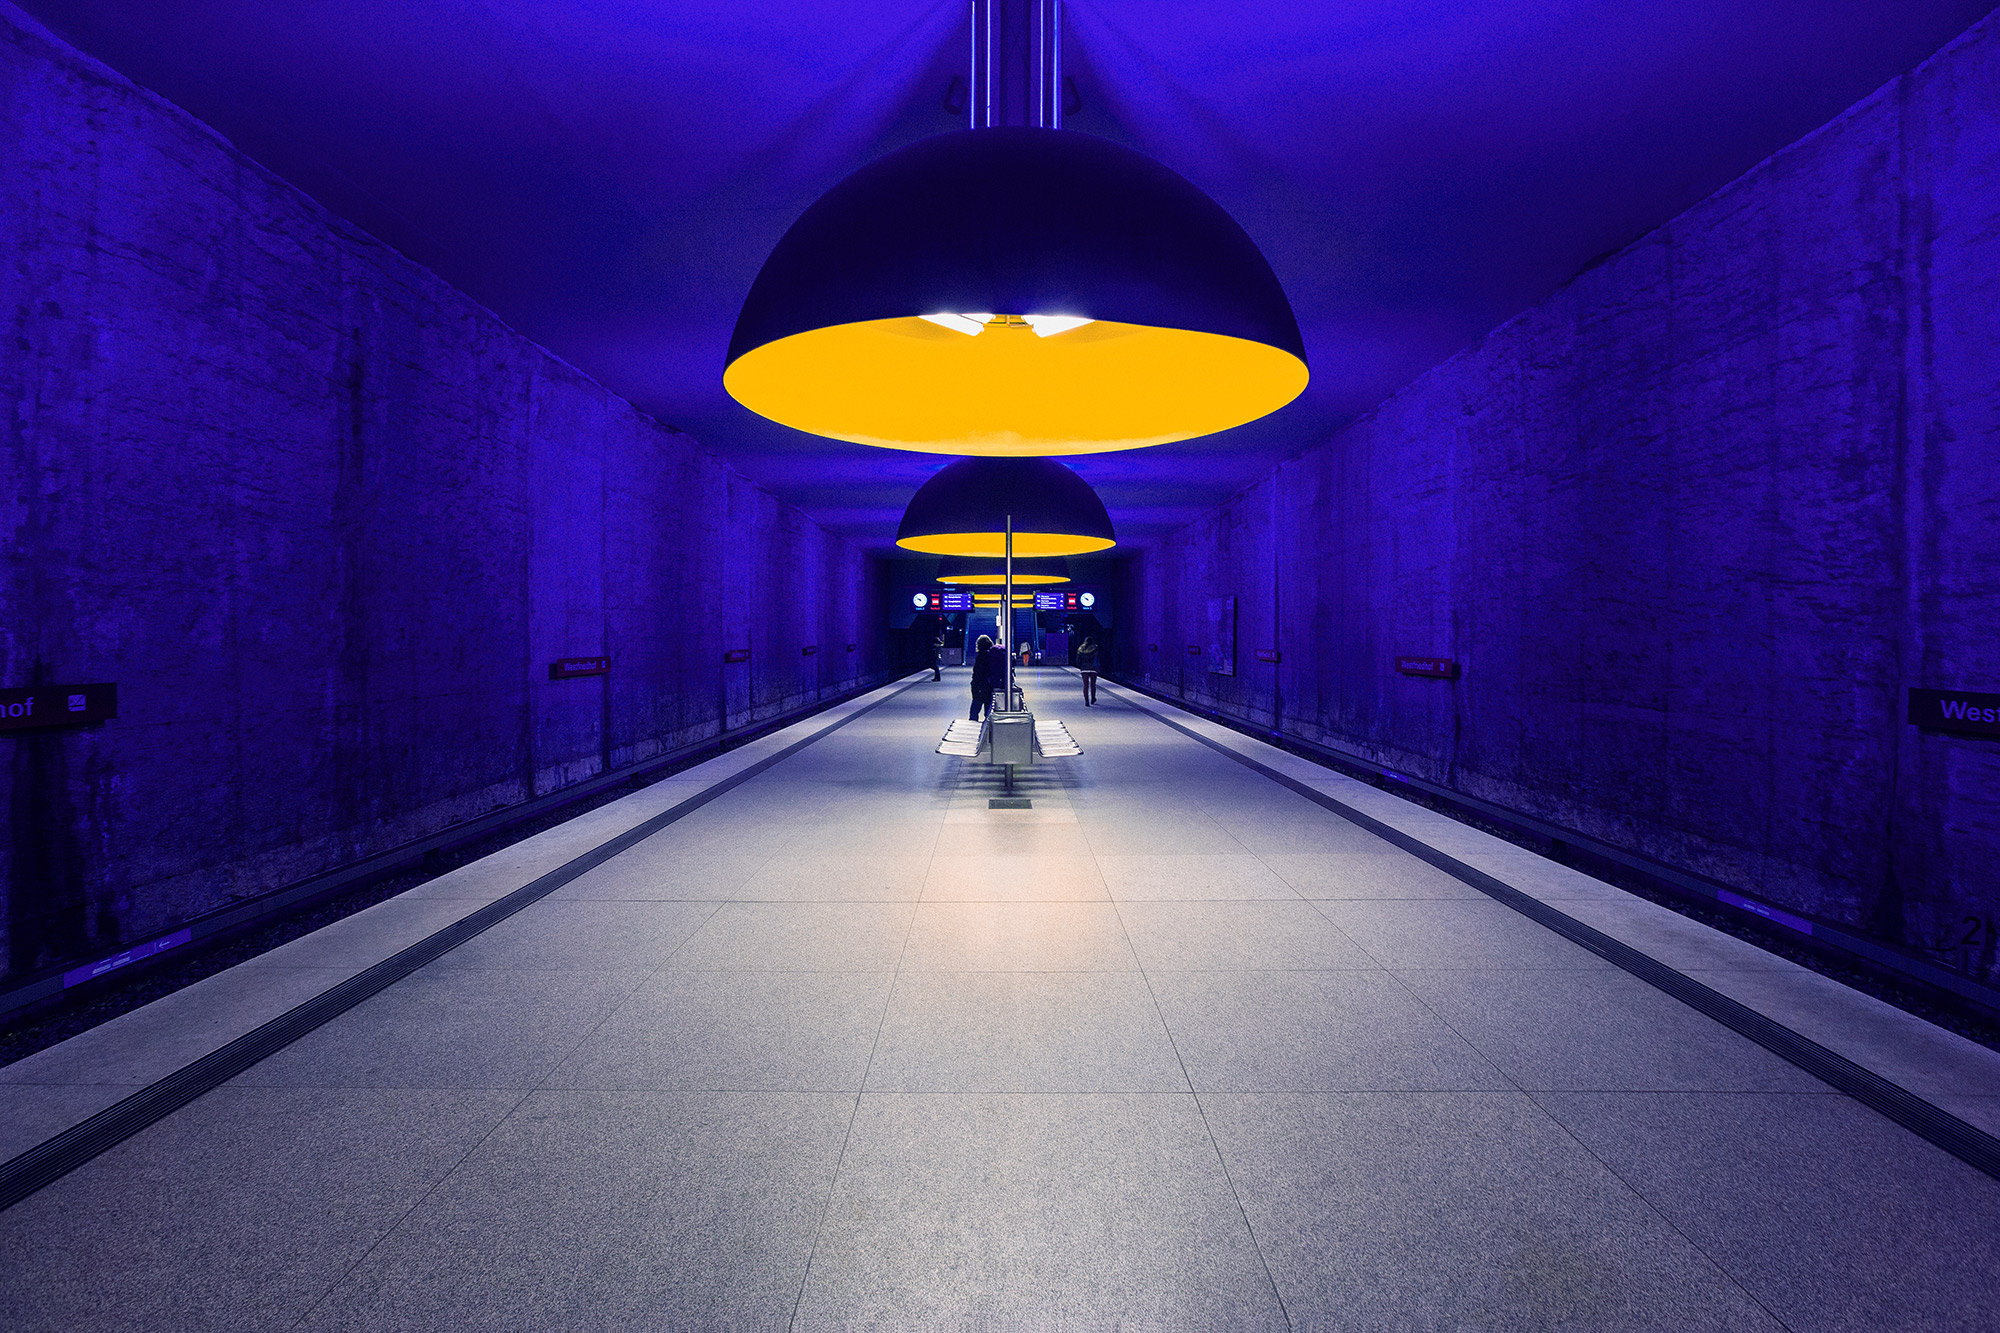 A moody subway station in Munich, Germany, photographed by Houston editorial and commercial photographer, Todd Spoth.